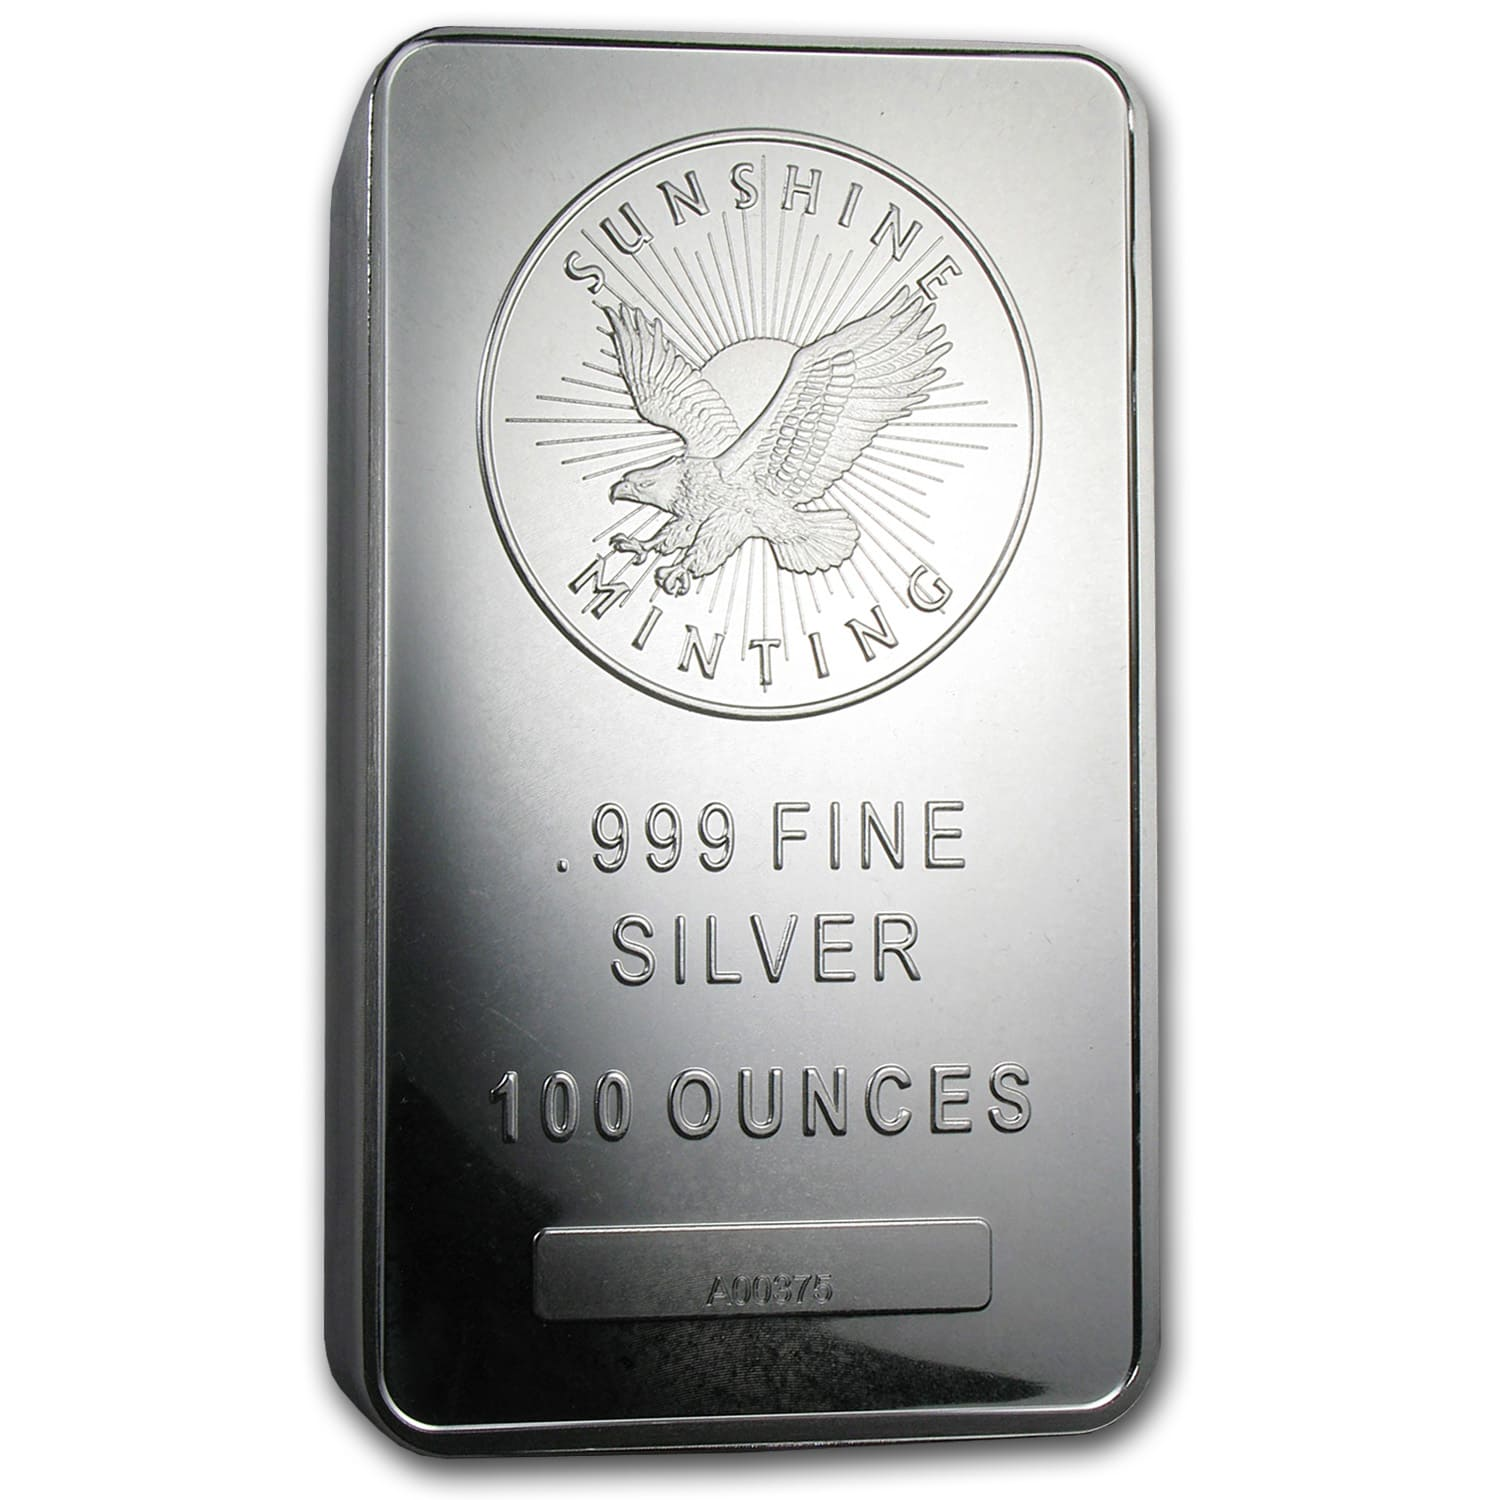 100 oz Silver Bars - Sunshine (V2)